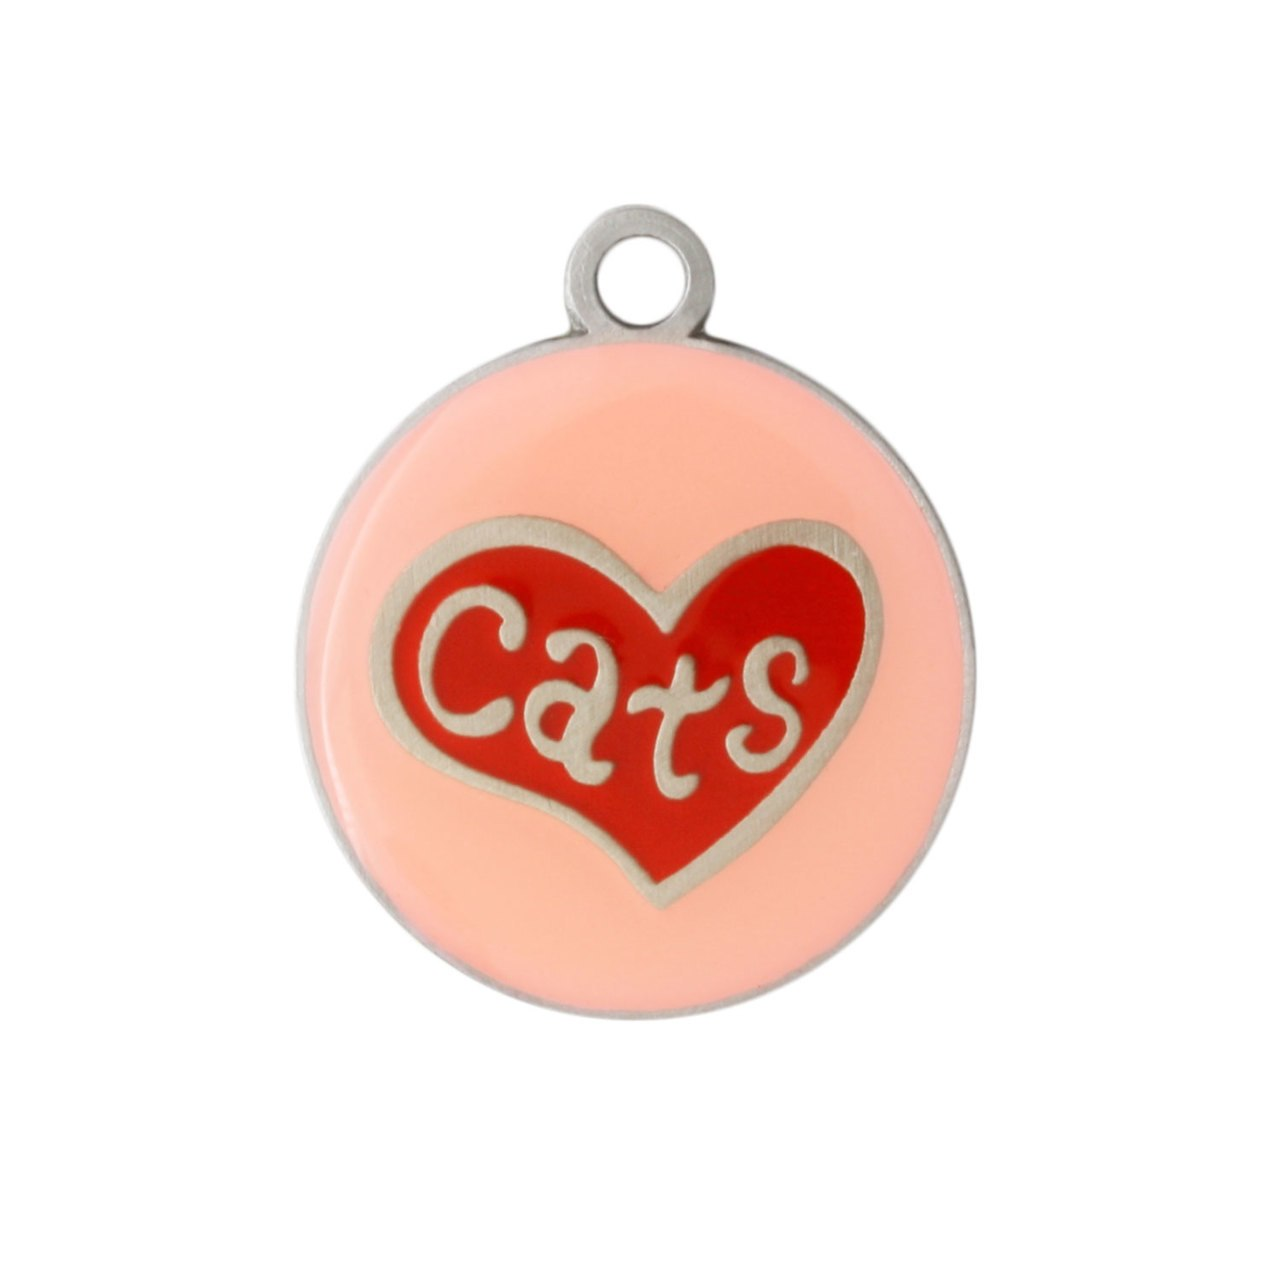 Painted Designer Cat ID Tags by Andrew Cat Heart